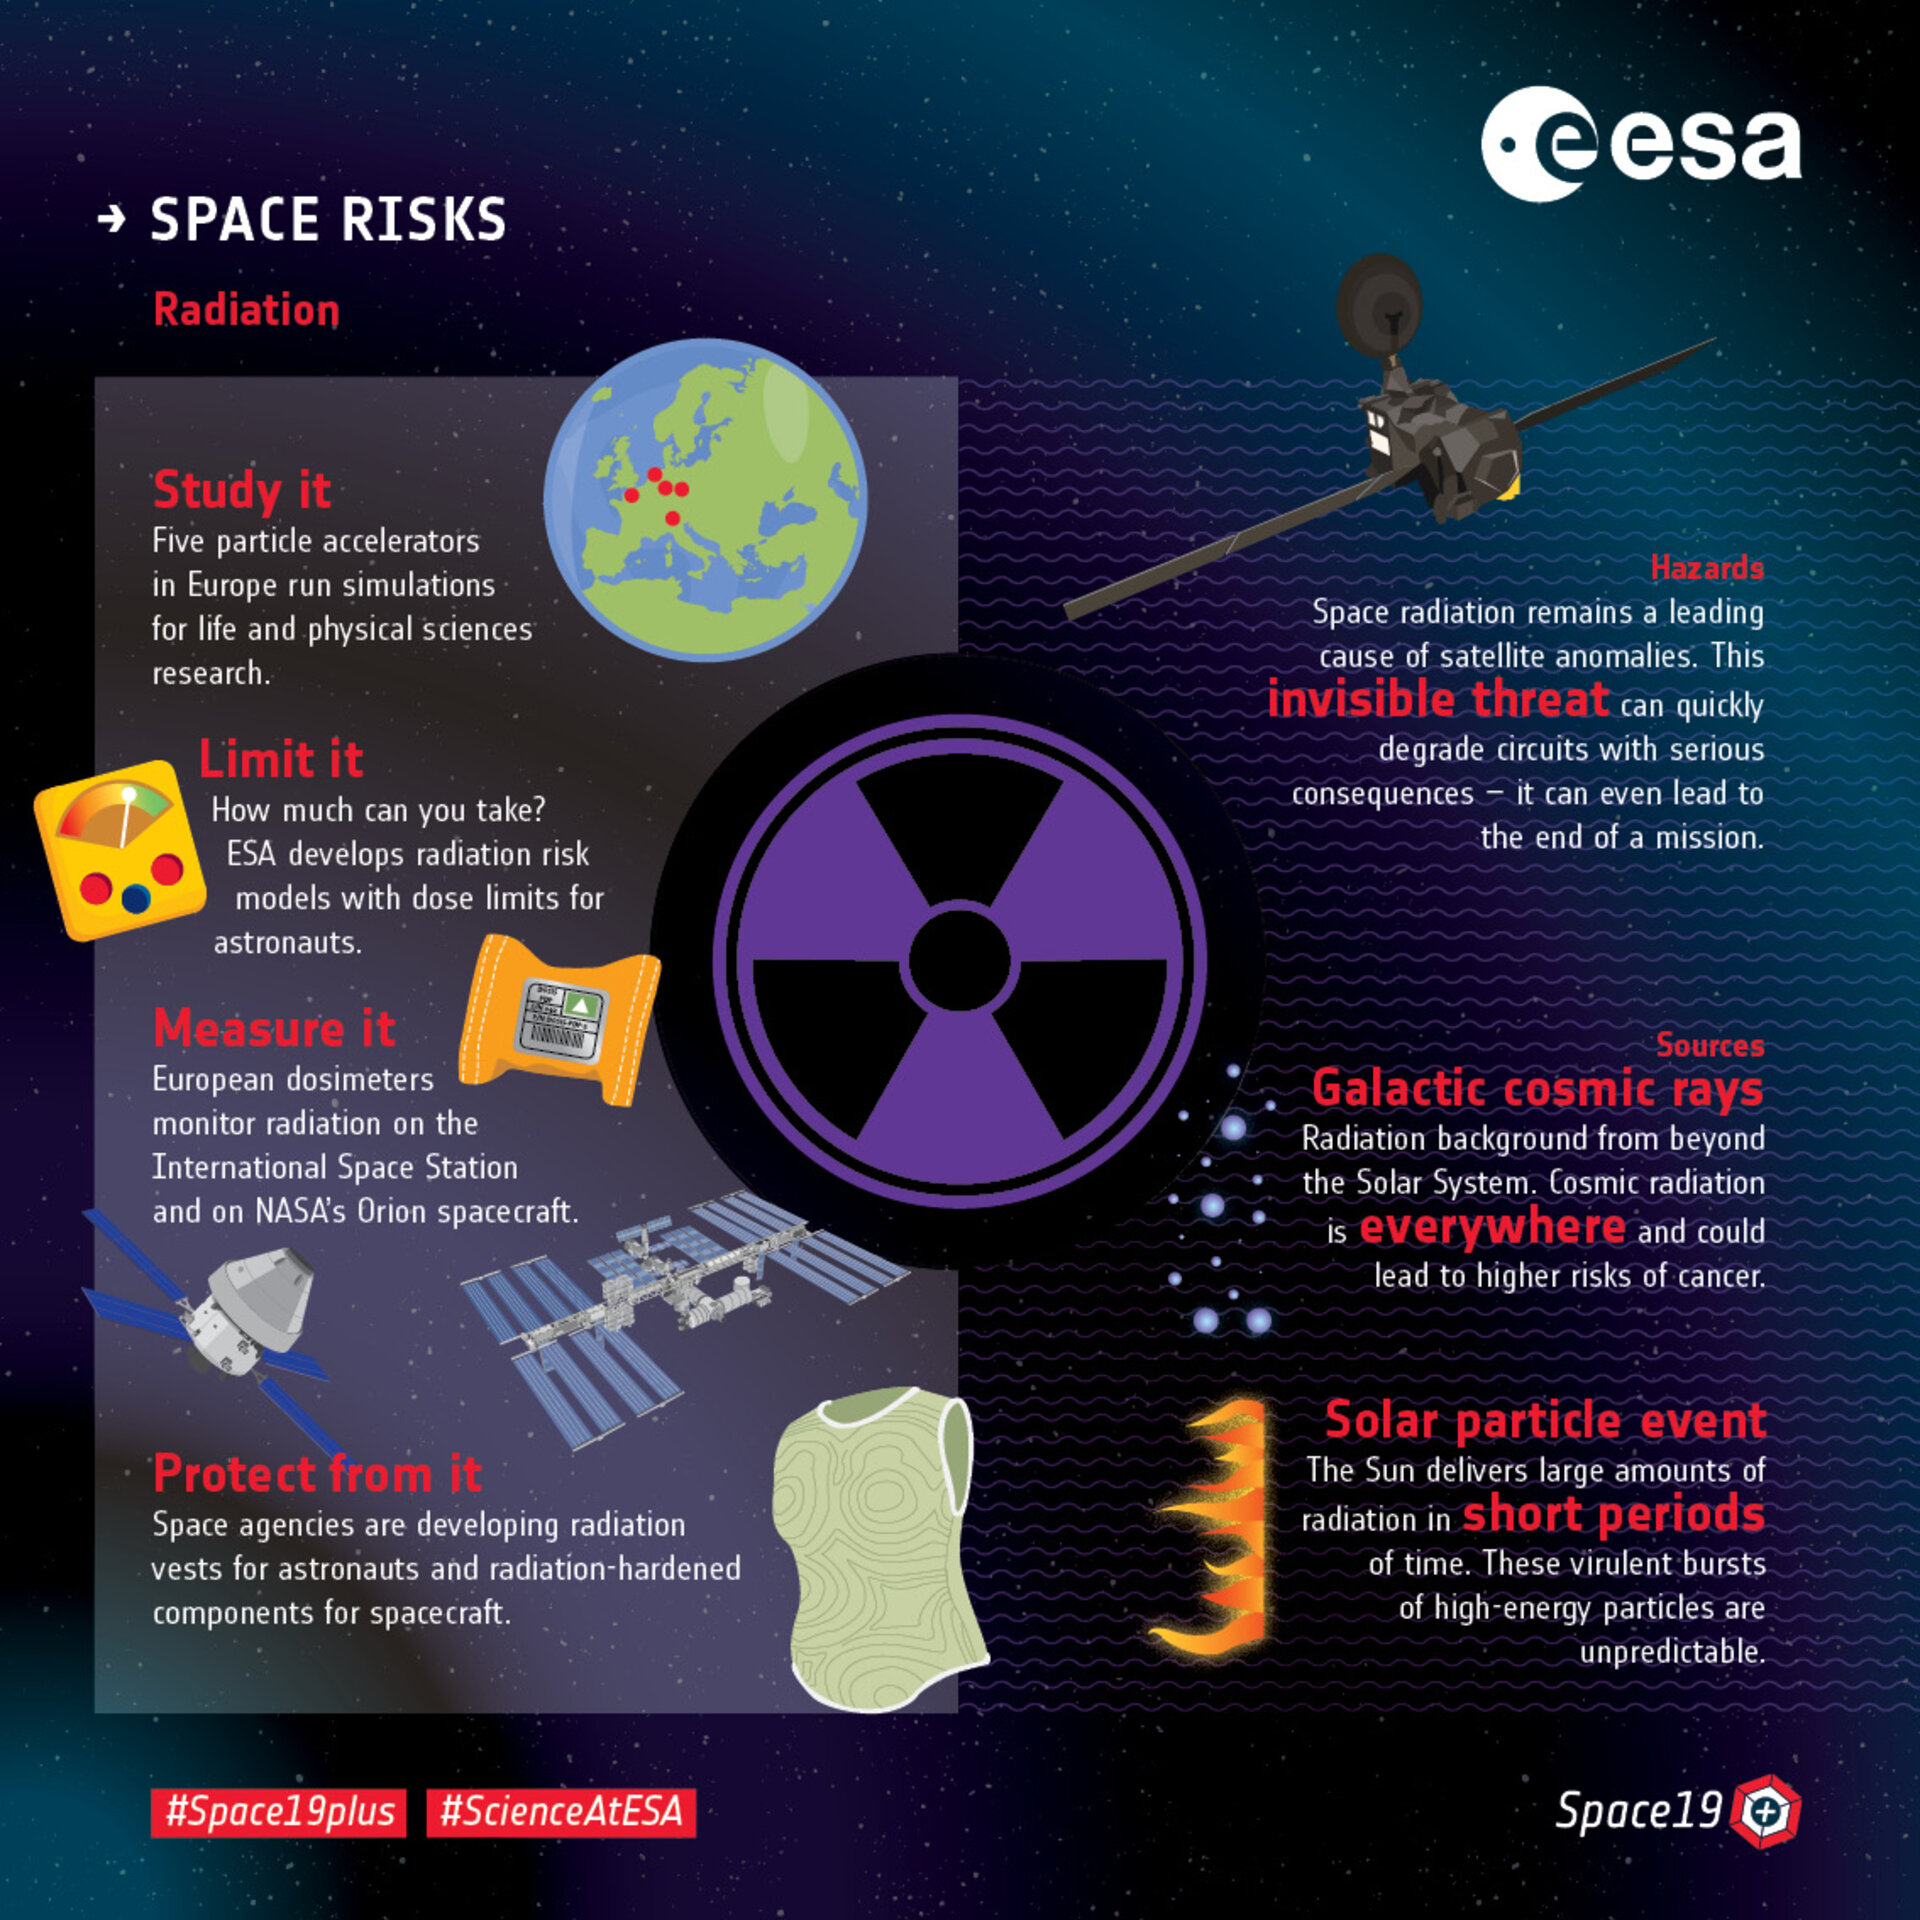 Space risks – Fighting radiation